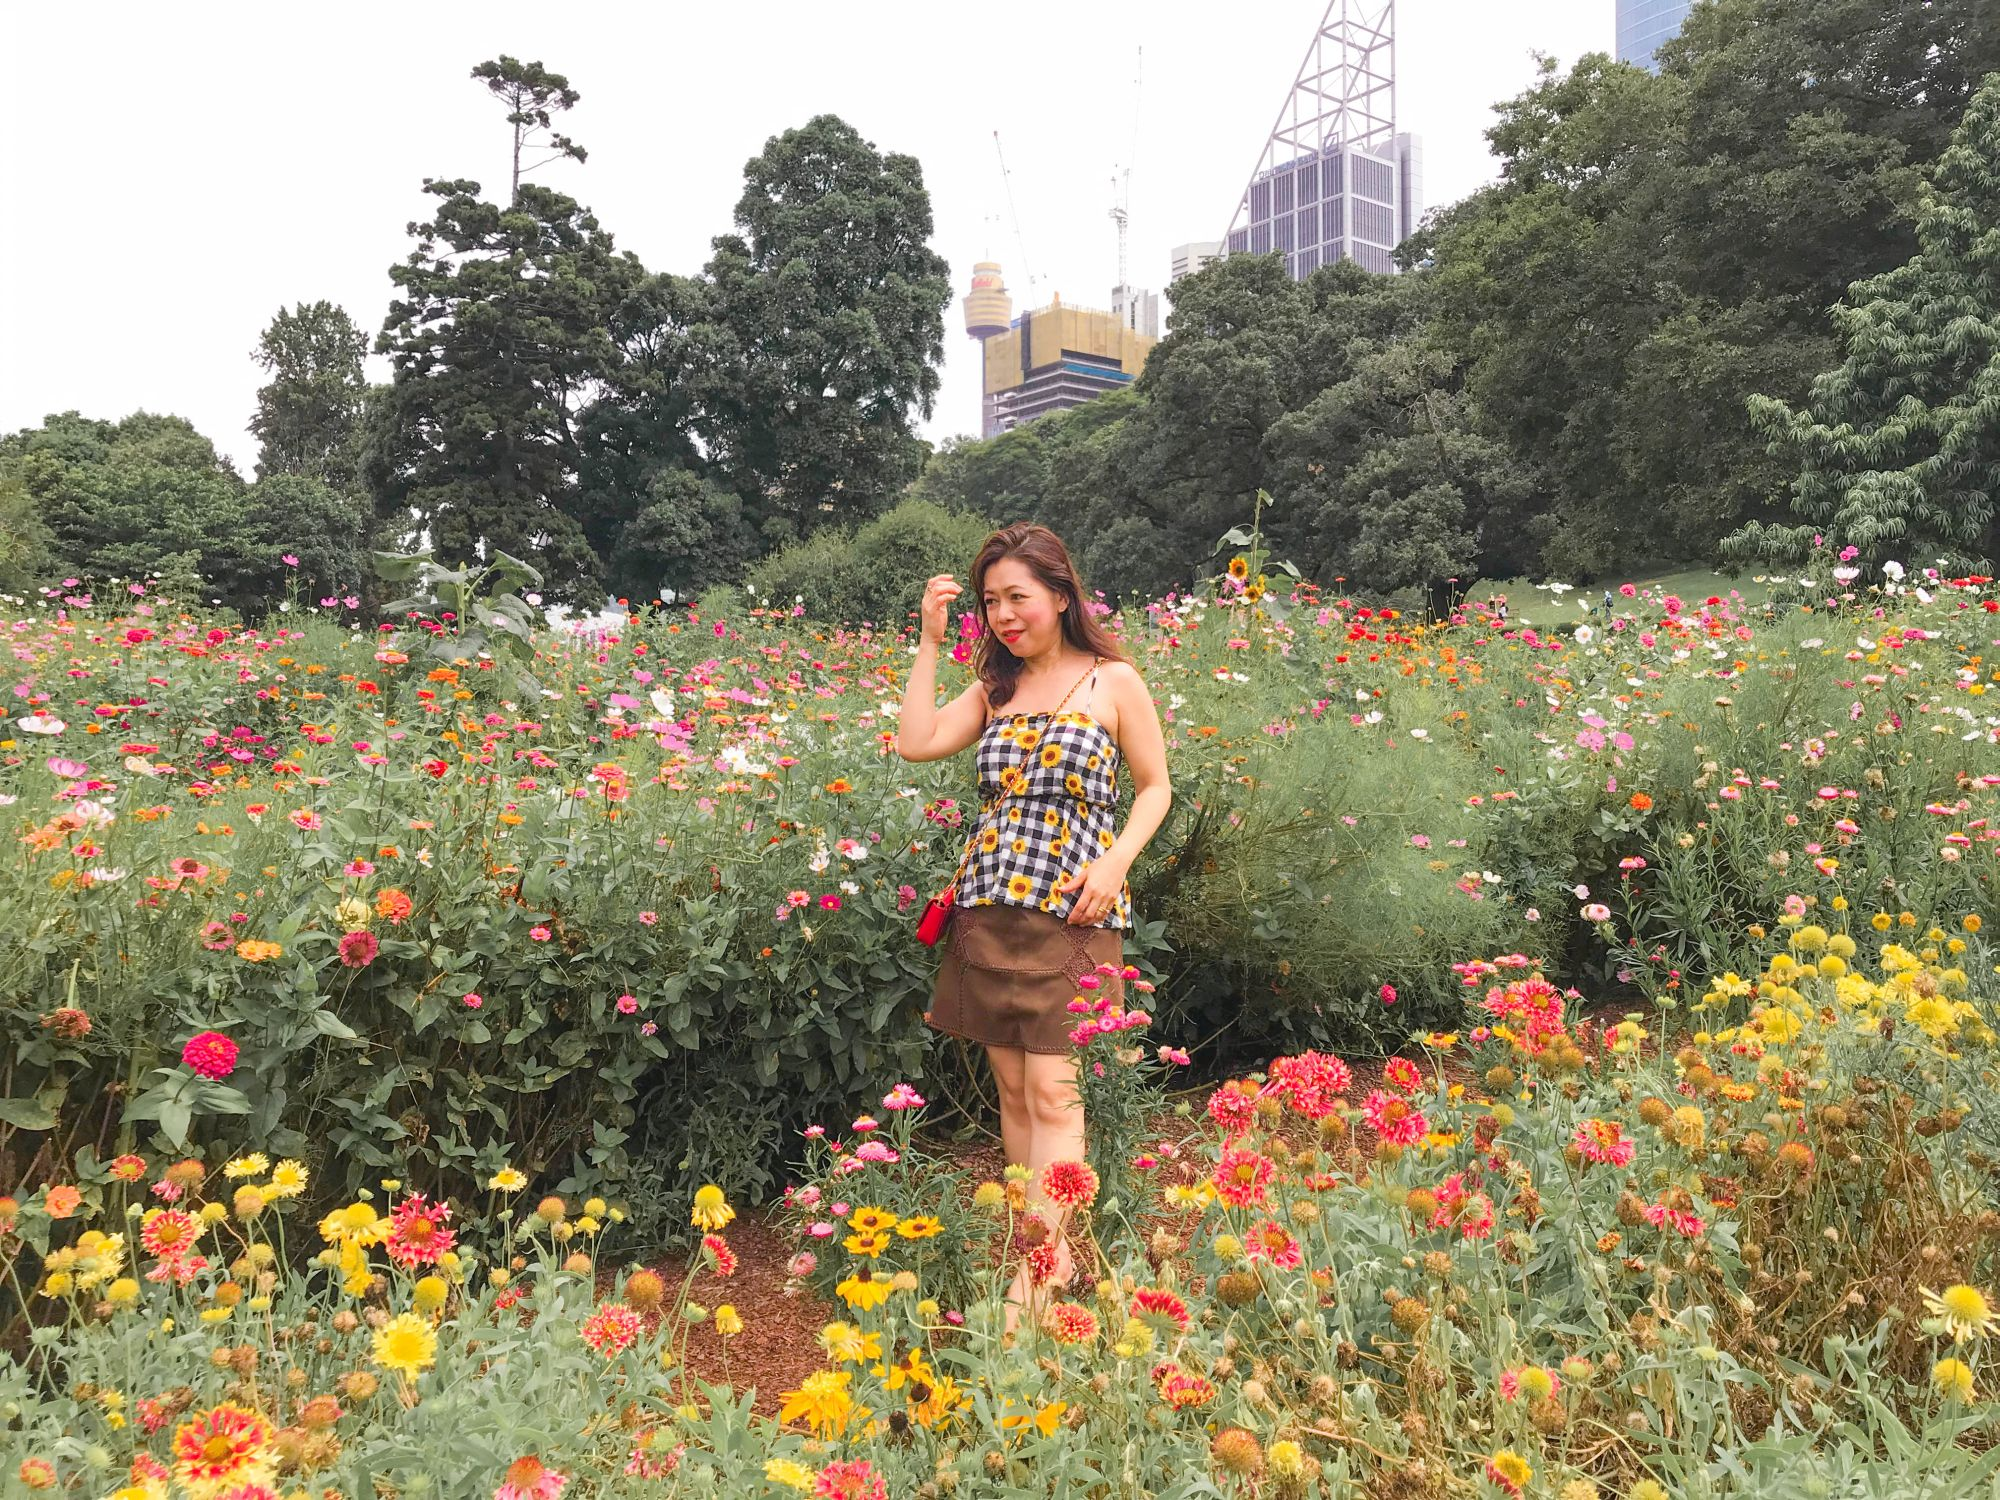 Where to find flowers in the city